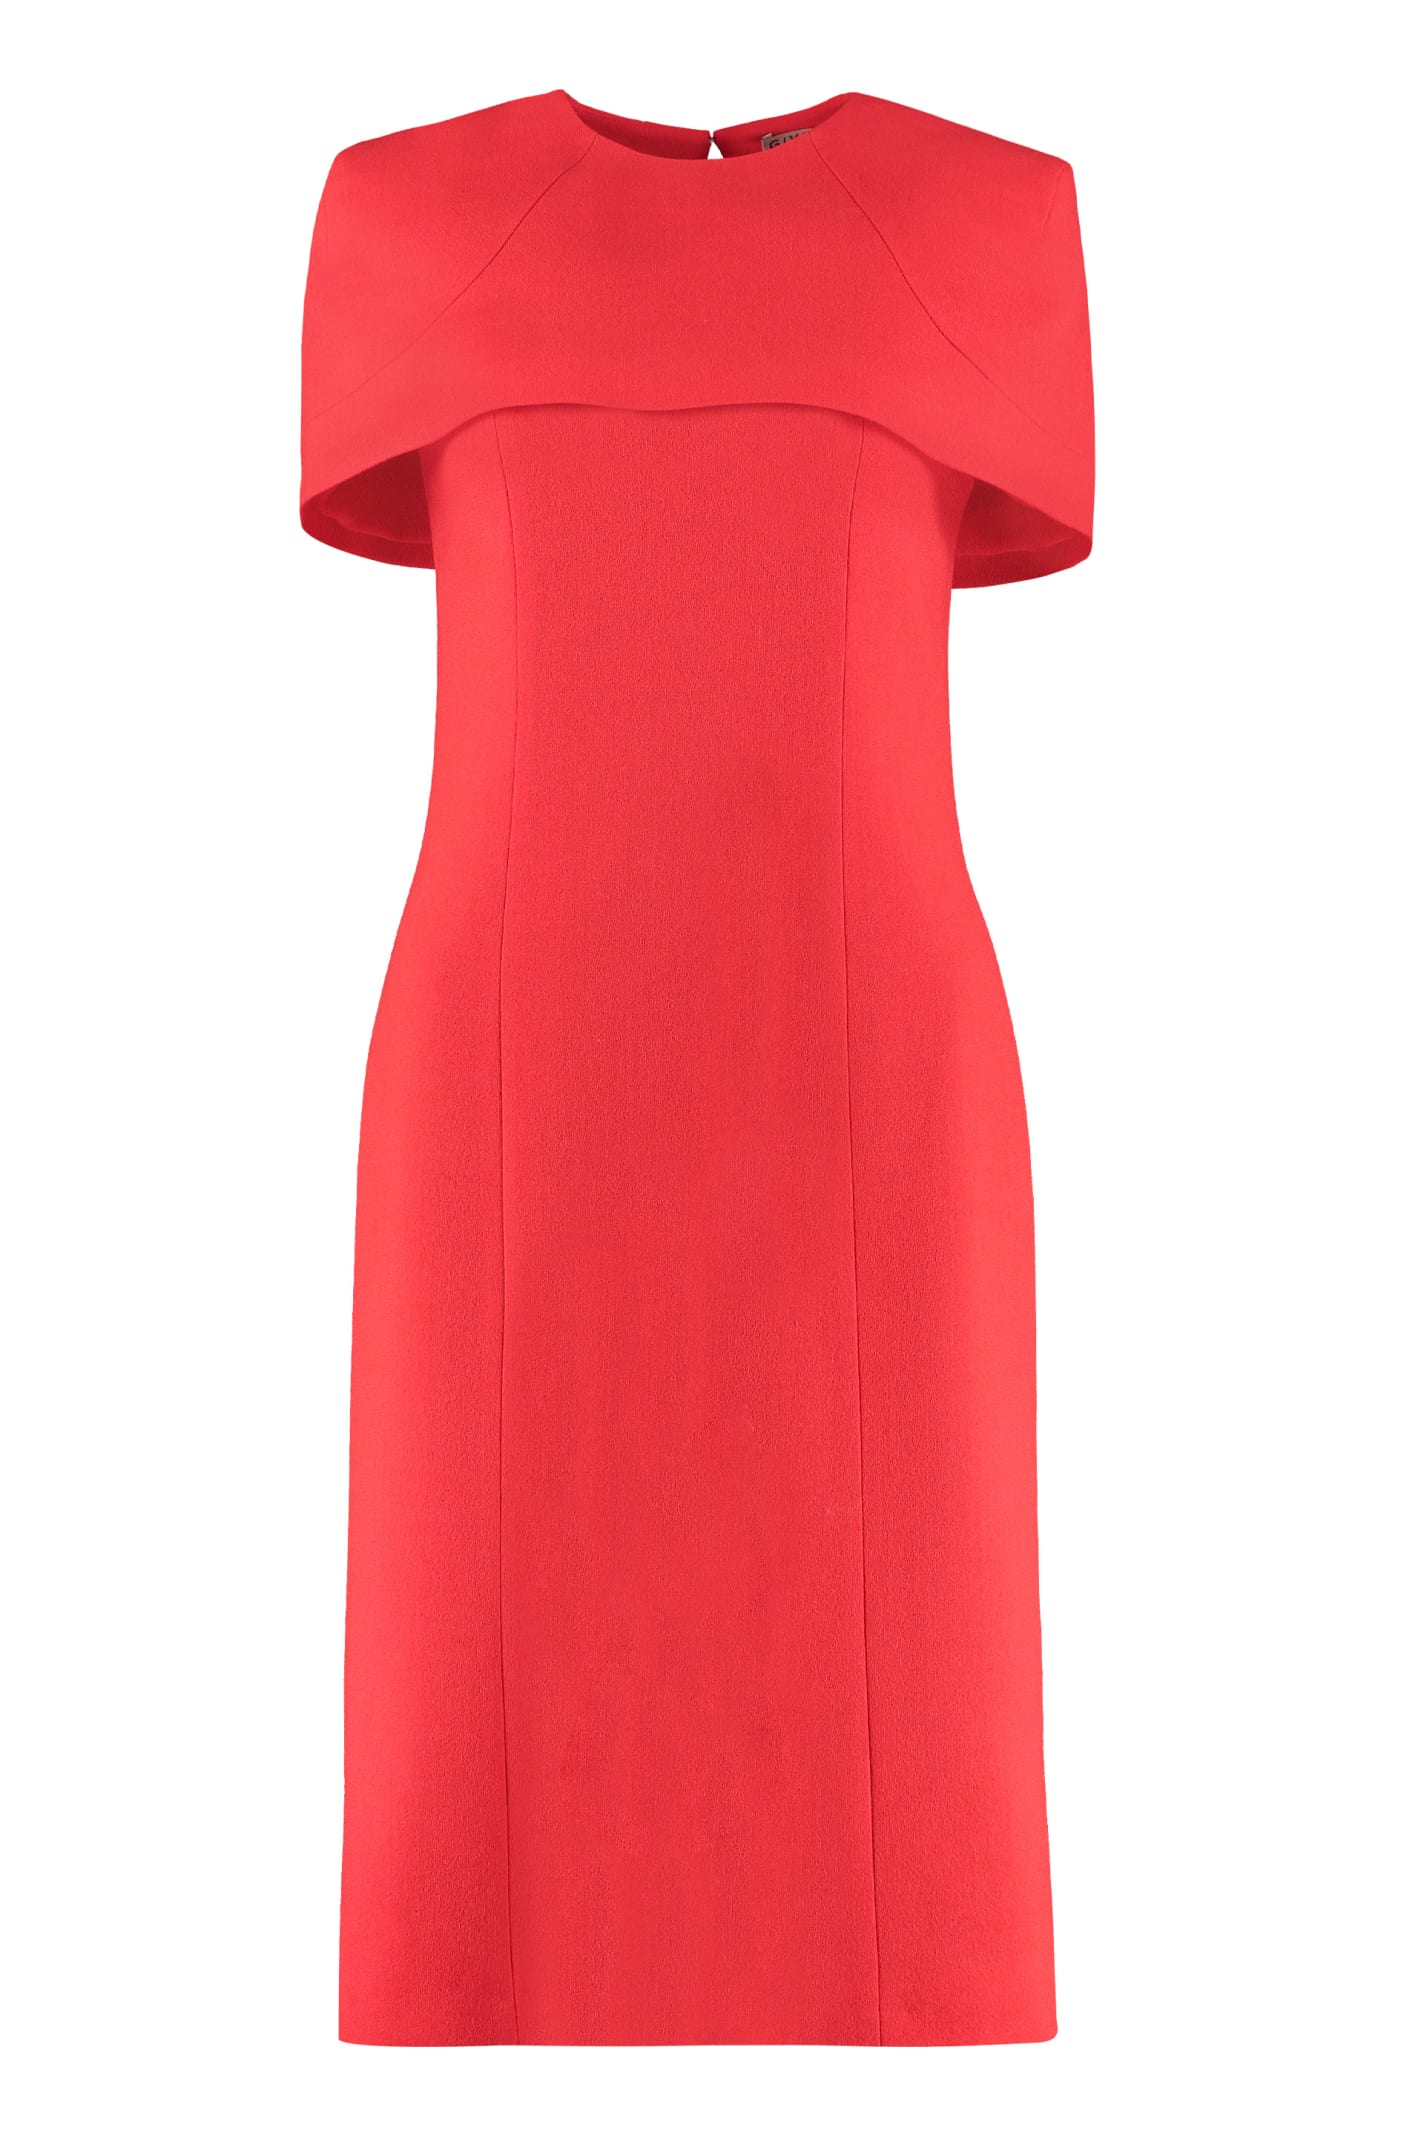 Buy Givenchy Crepe Sheath Dress online, shop Givenchy with free shipping